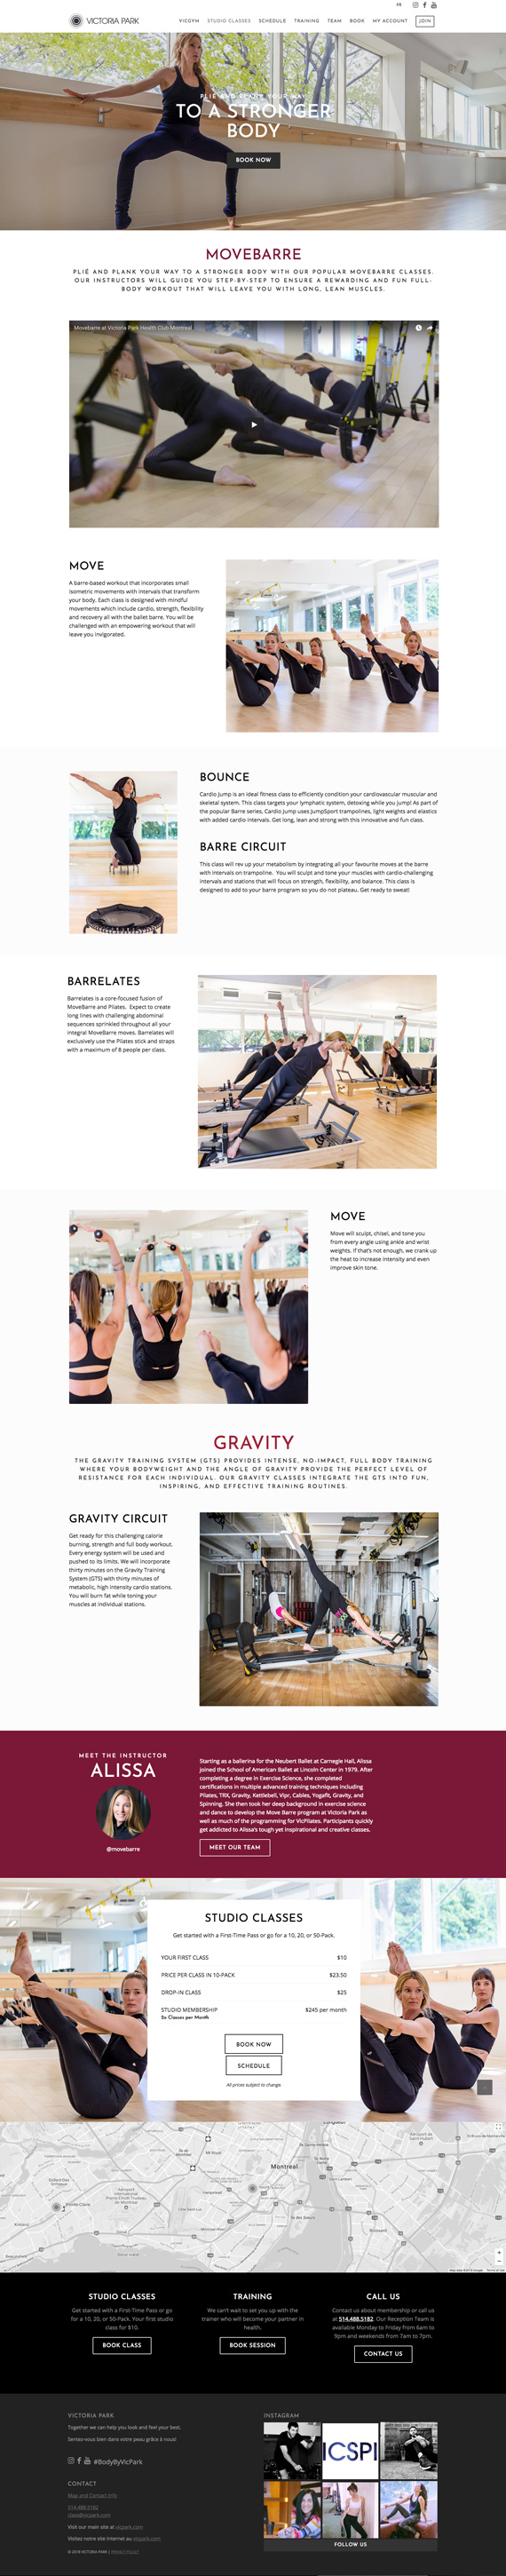 Health Wellness Branding Web Design Victoria Park Fitness Circuit Works Personal Training Brochure Website